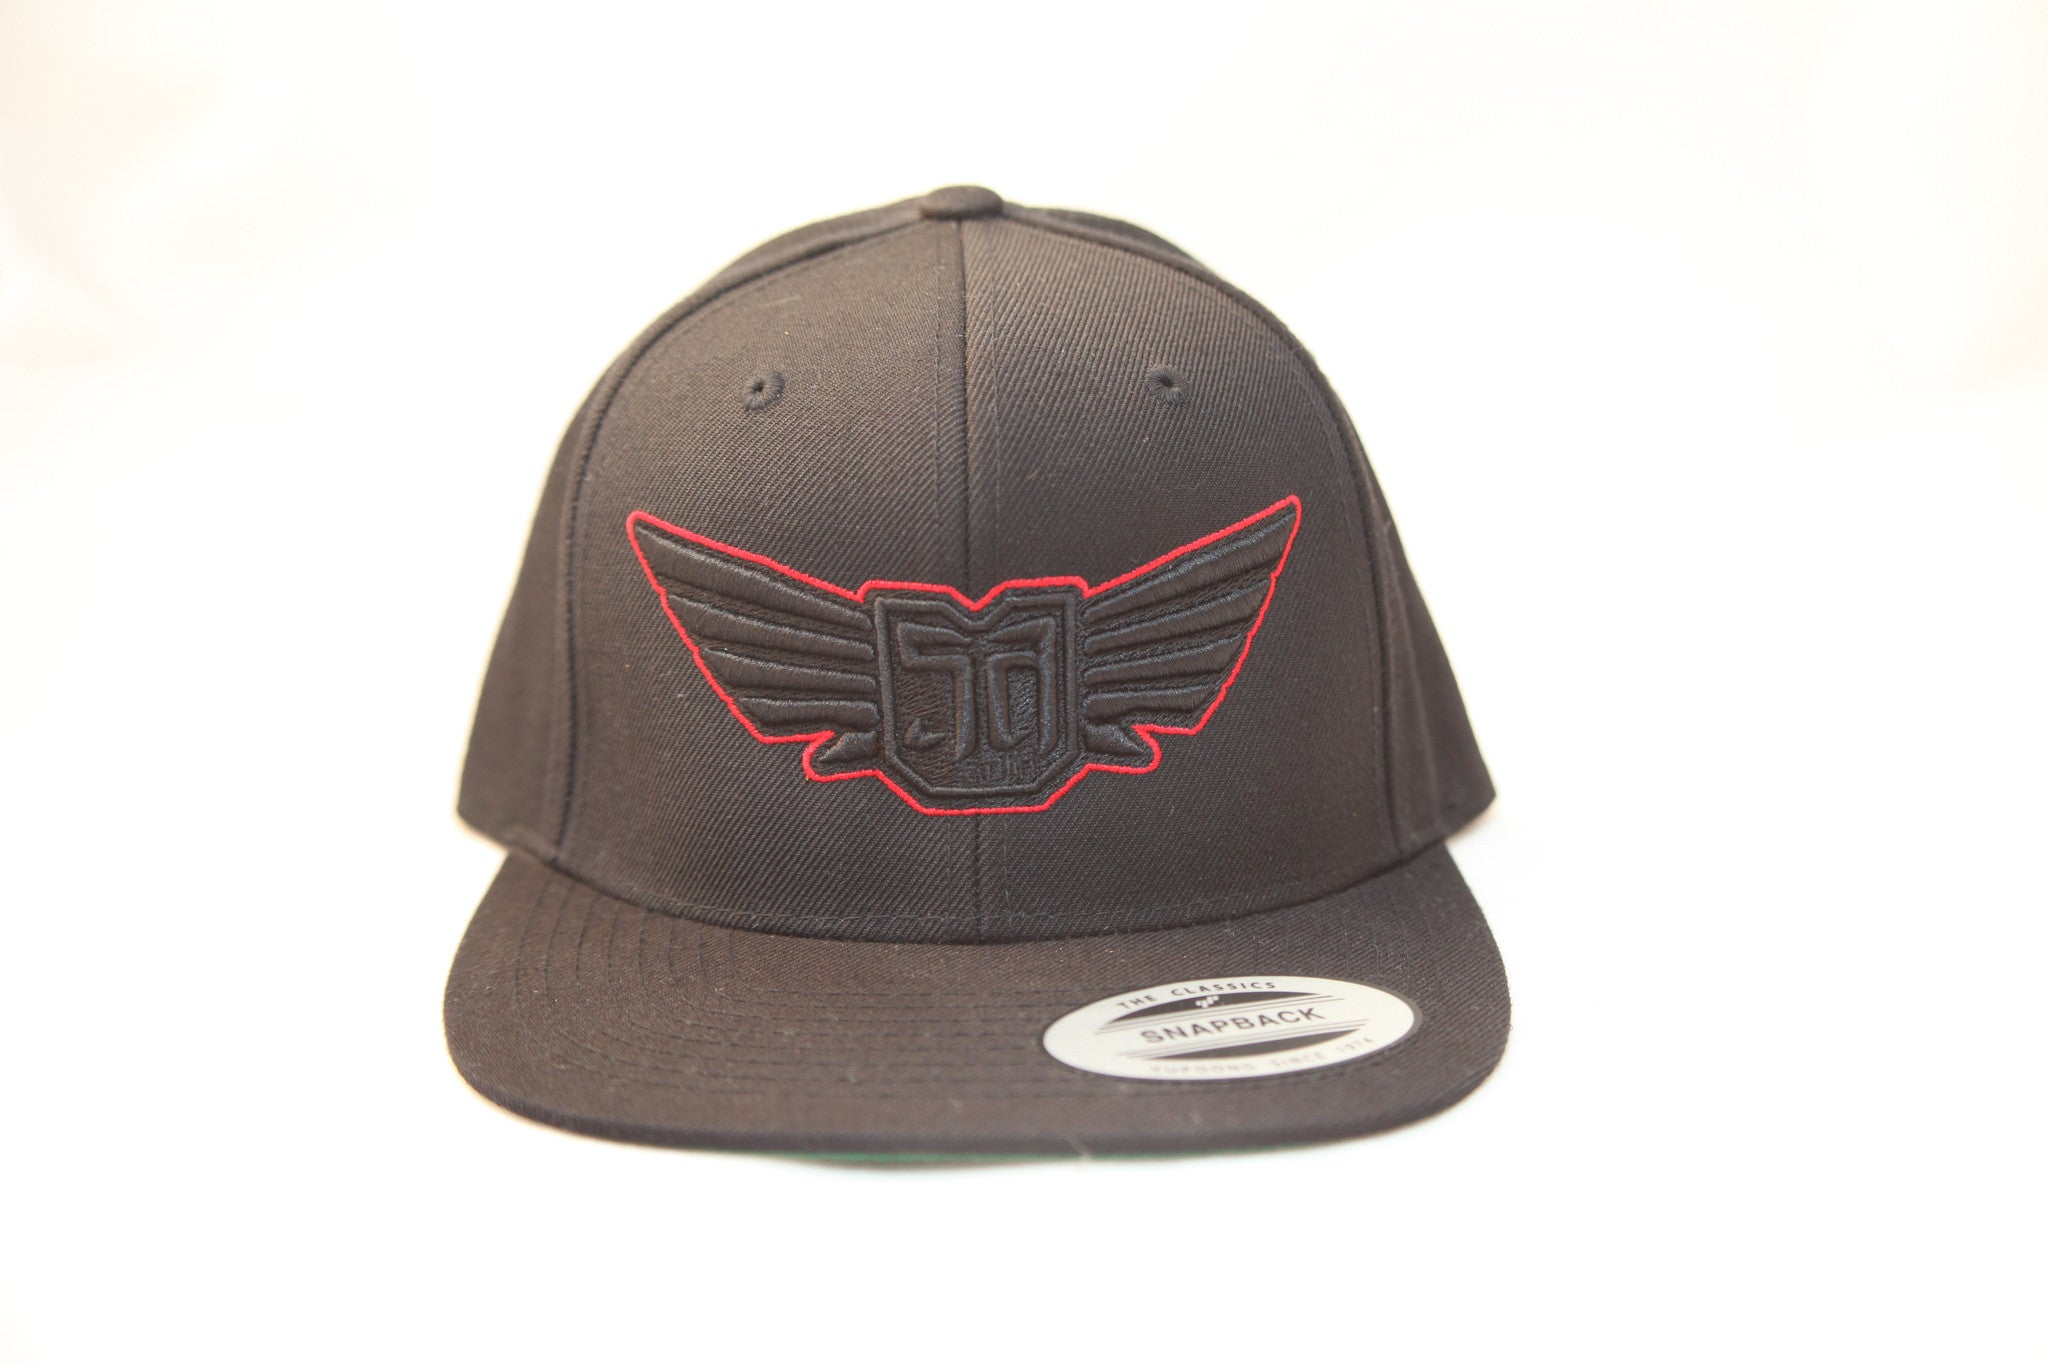 AV8 - FLEXFIT SNAP BACK HAT - BLACK - BLK BLK RED LOGO